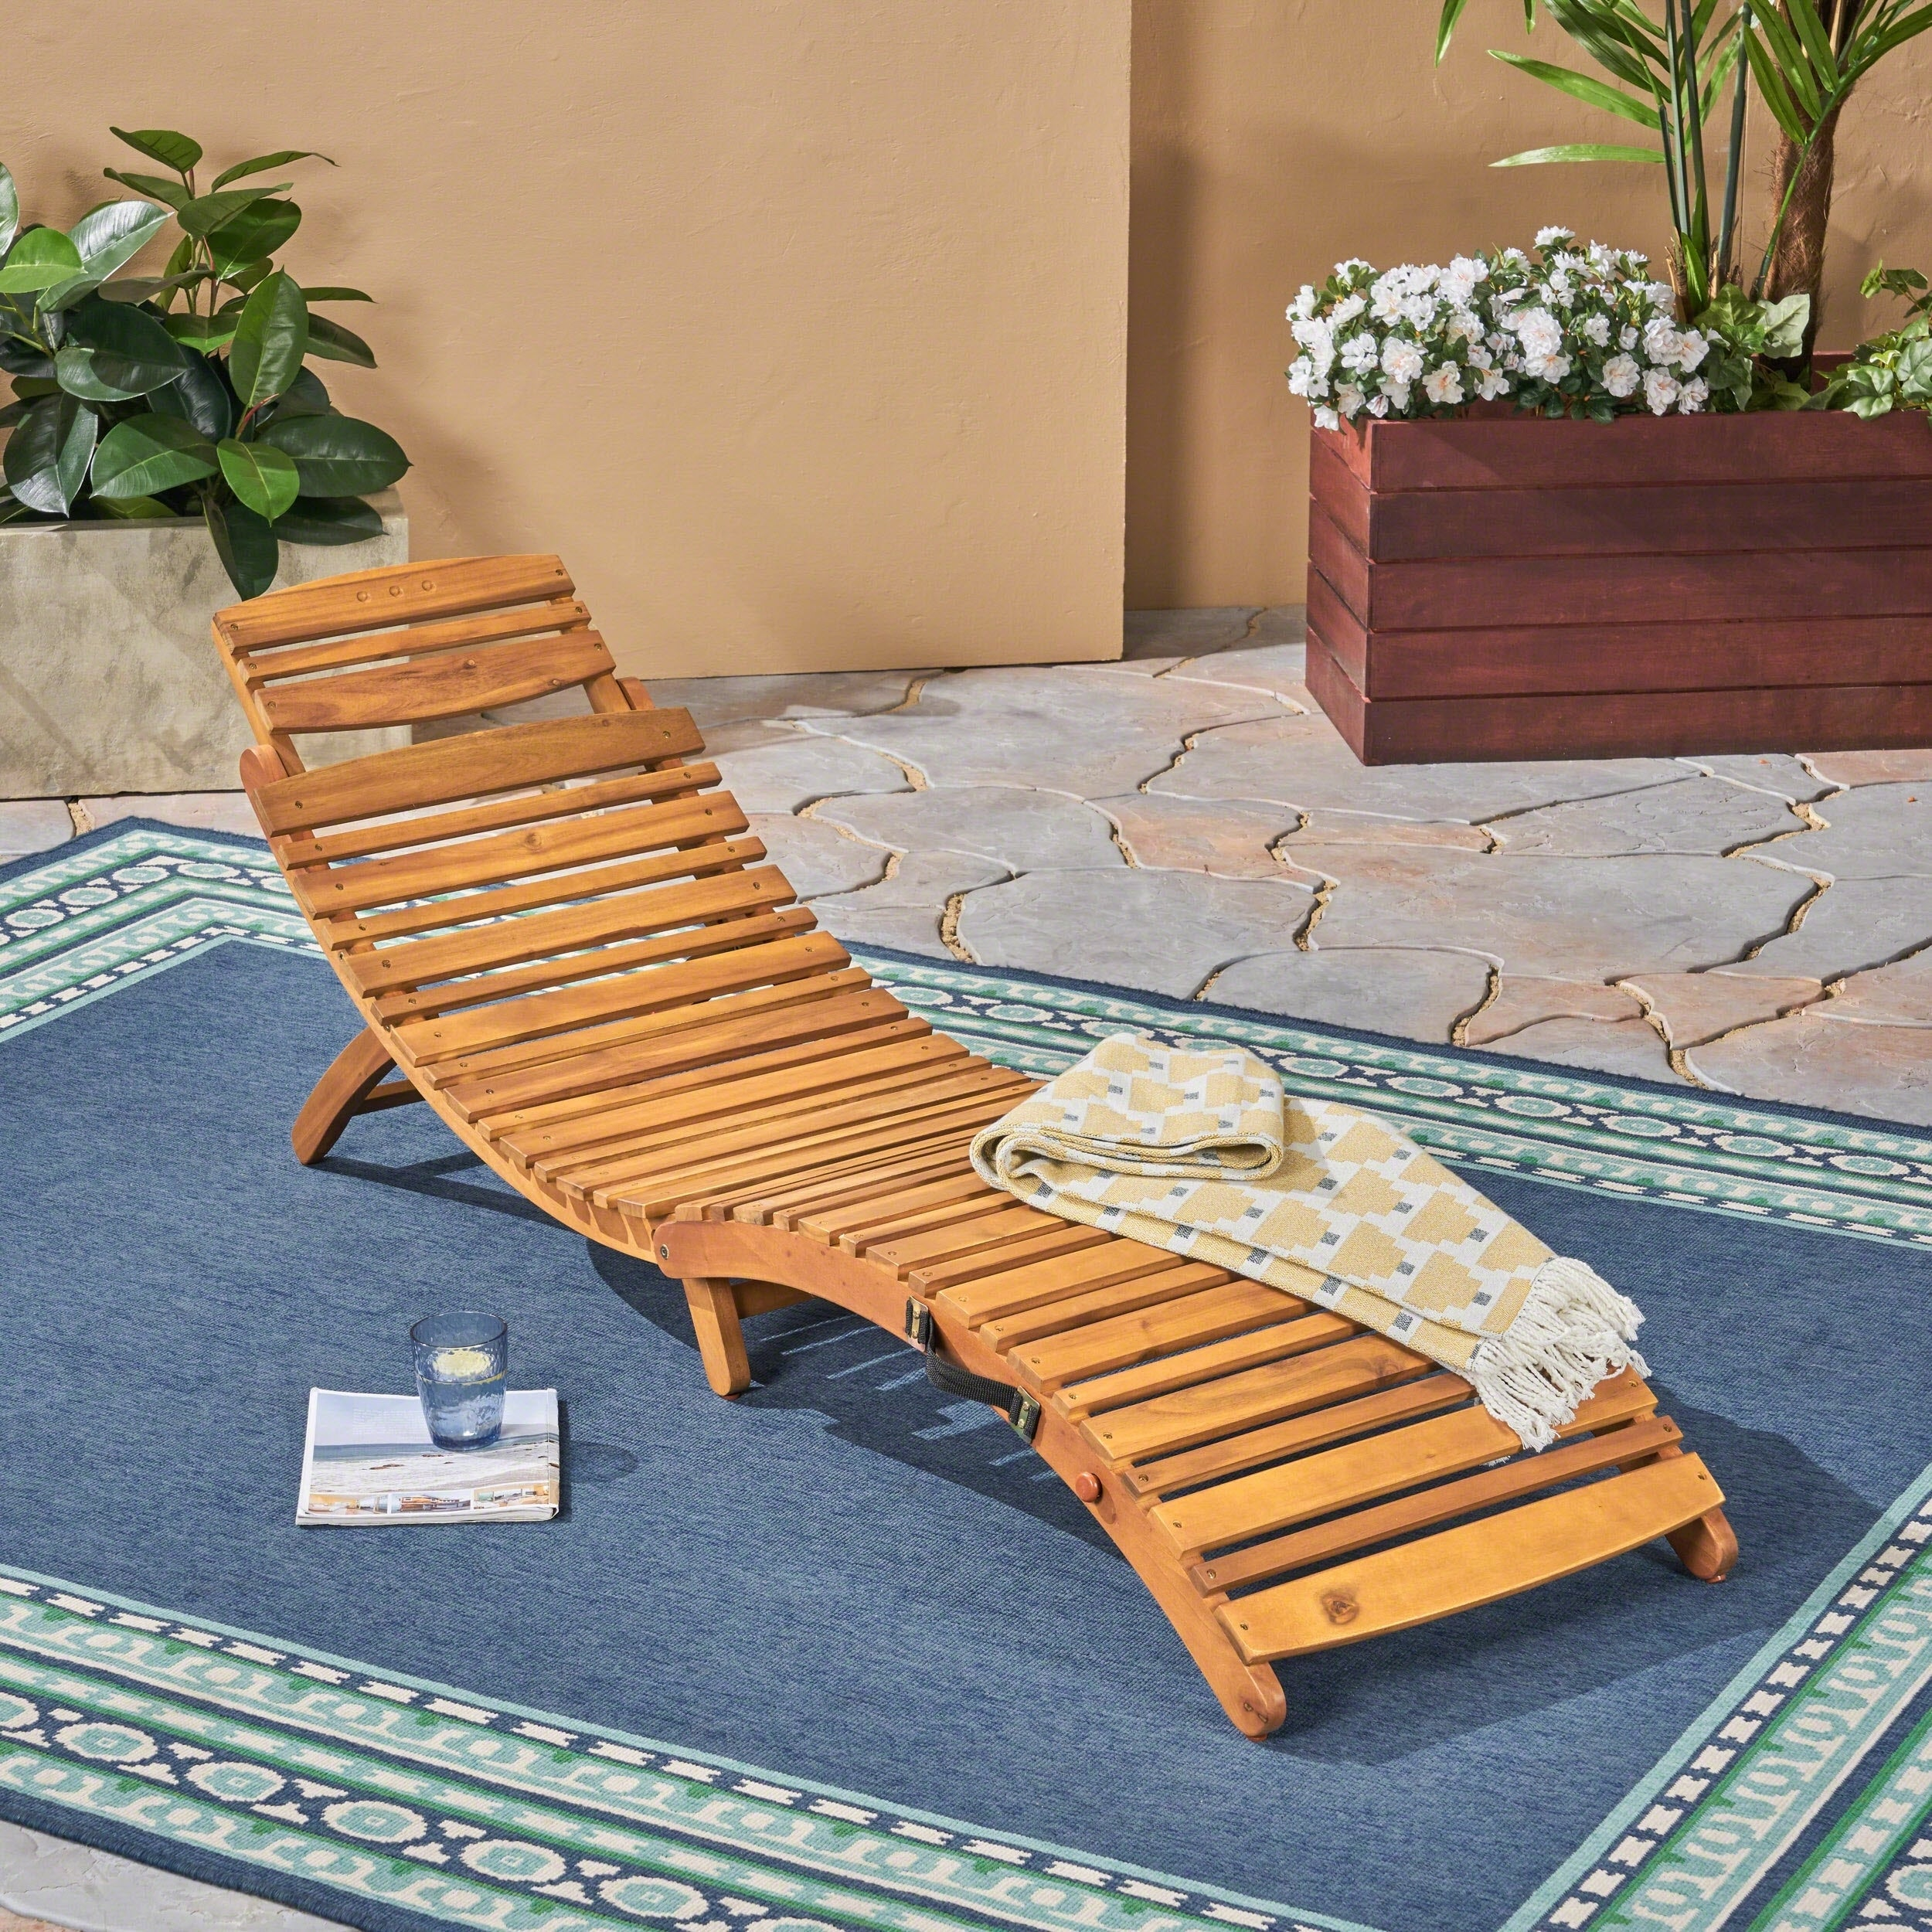 Overstock.com Christopher Knight Home Lahaina Wood Outdoor Chaise Lounge at Sears.com